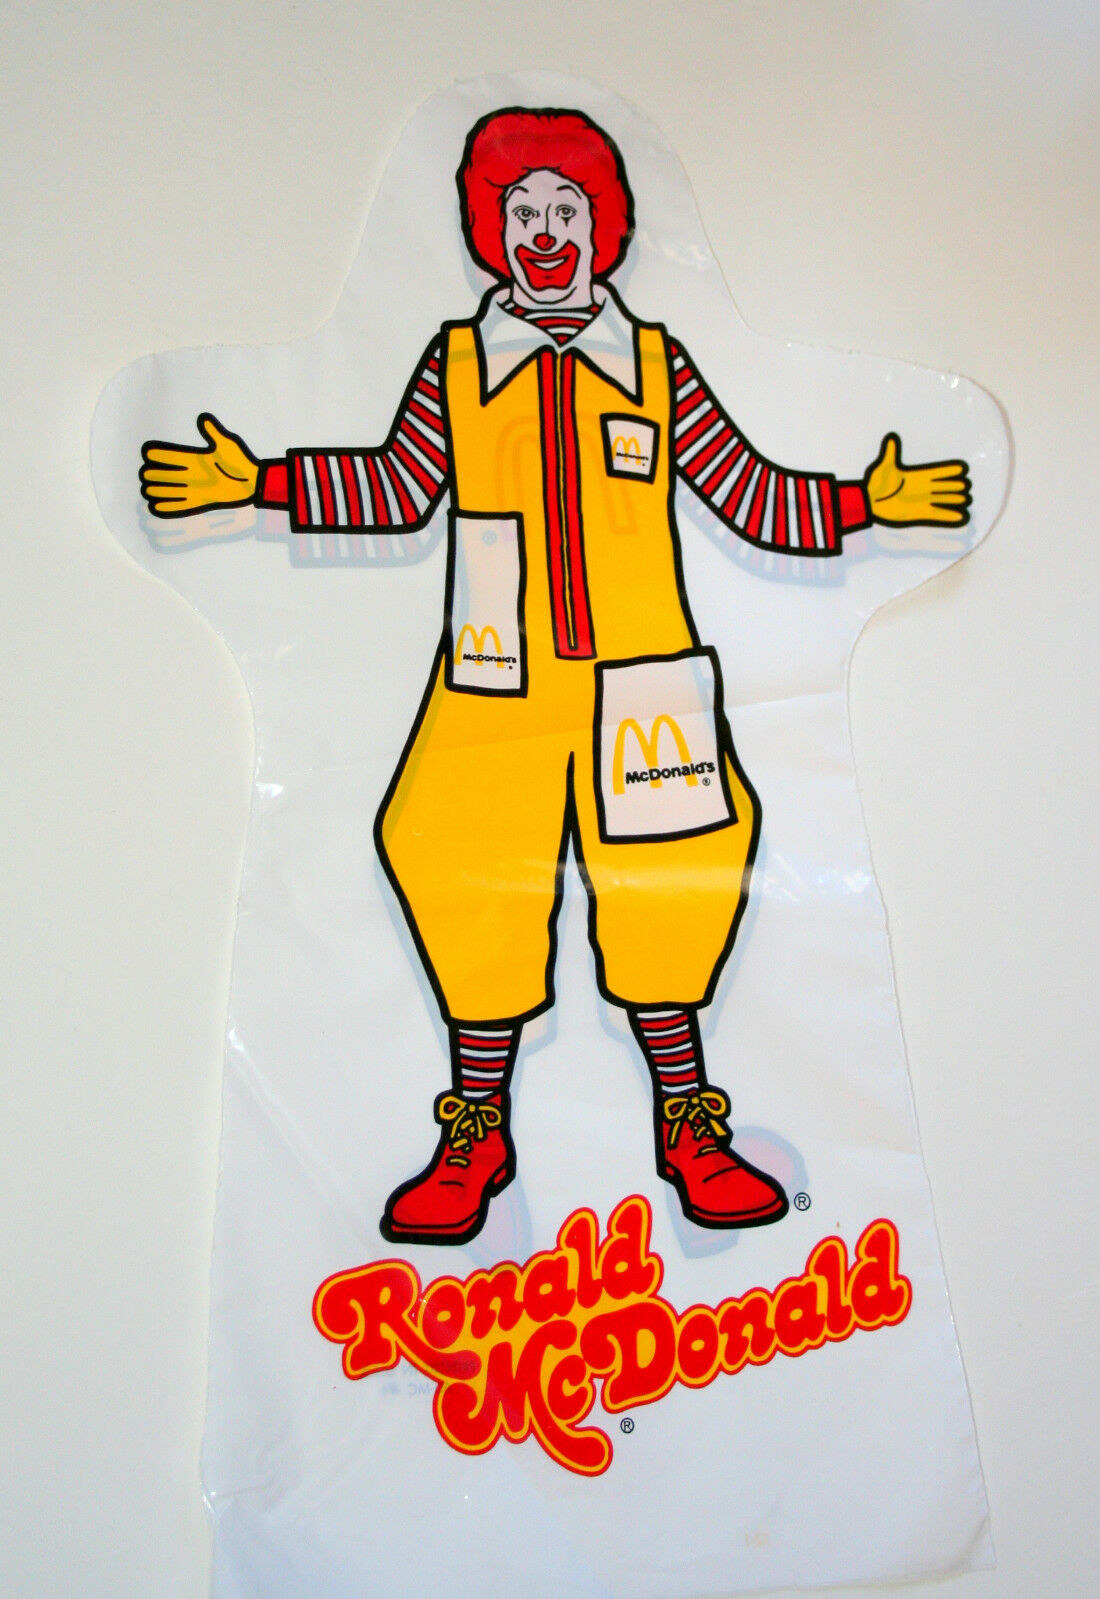 A plastic bag in the shape of puppet with Ronald McDonald on it.